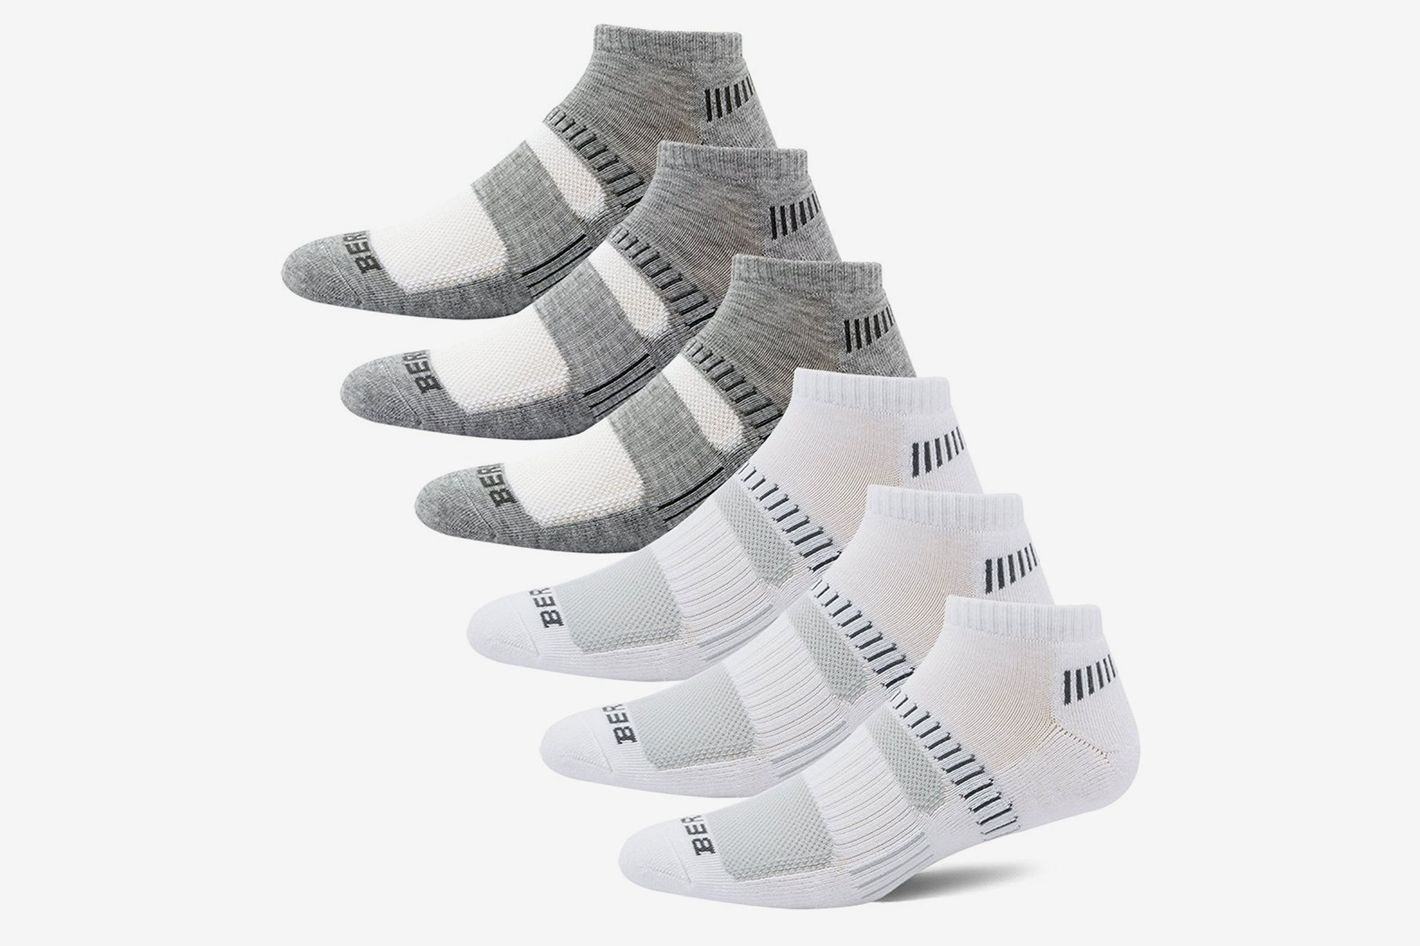 Bering Men's Performance Athletic Low Cut Running Socks (6 Pair Pack)